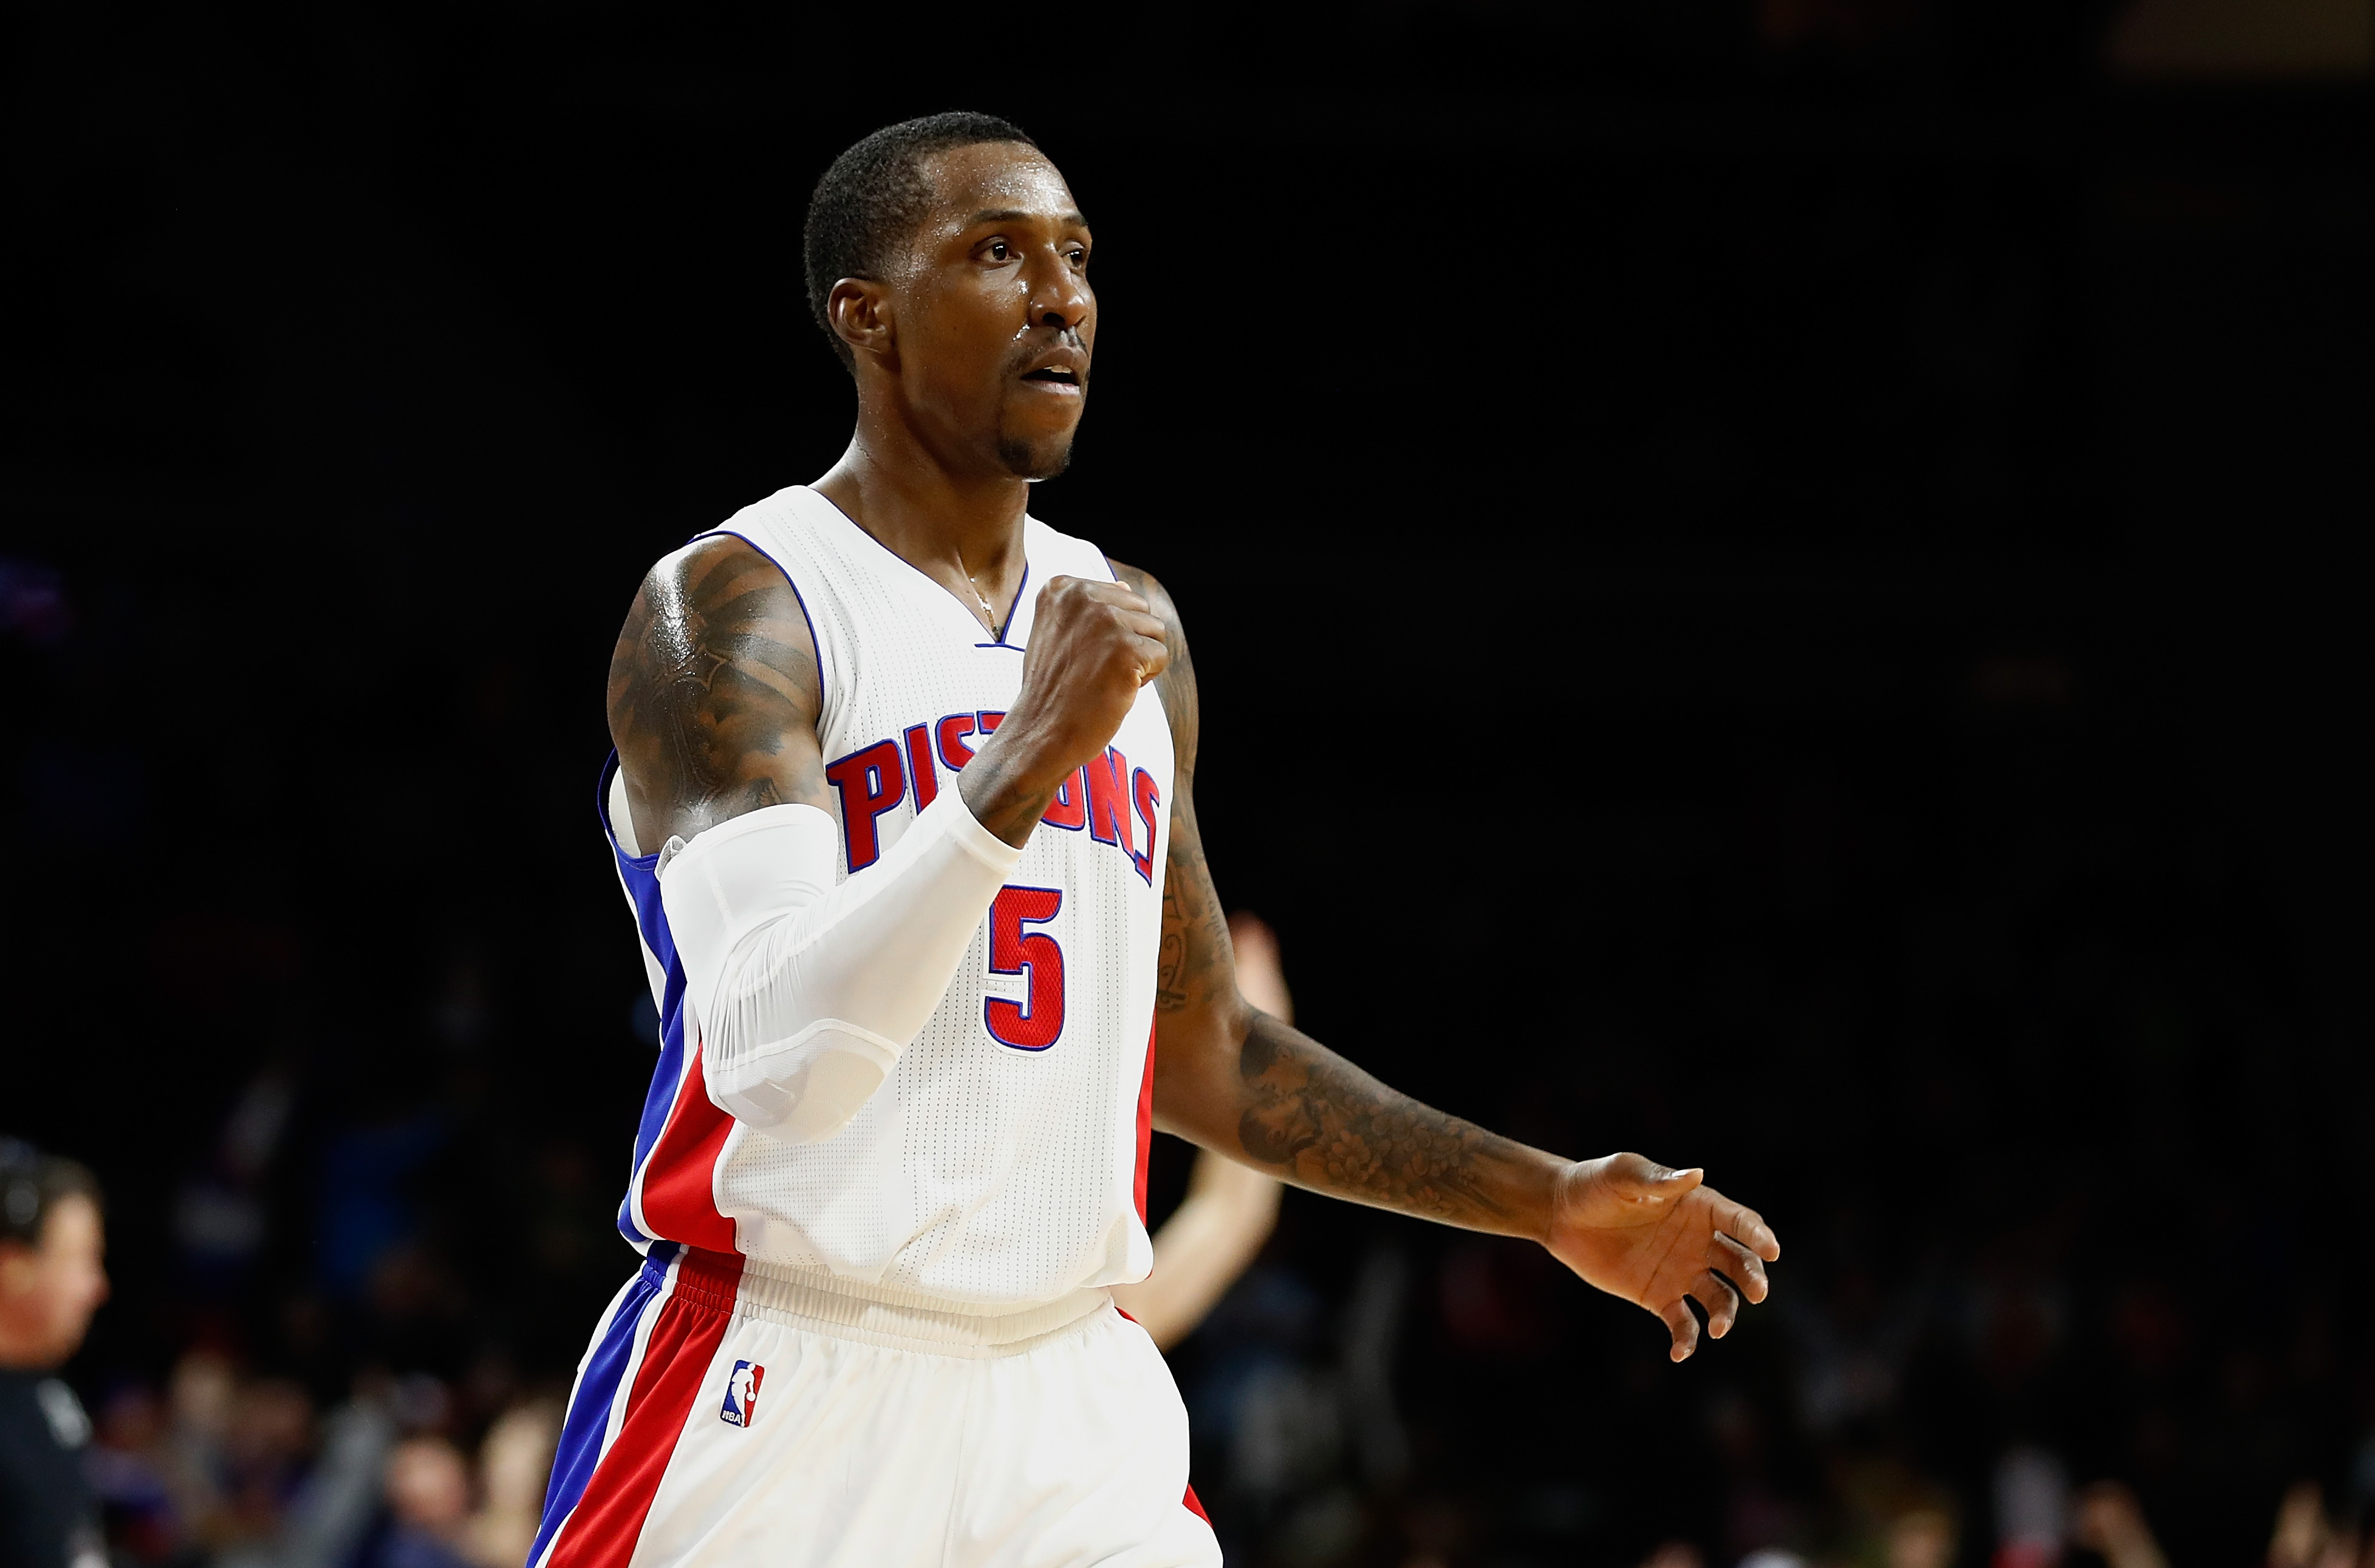 Caldwell Pope signs with Lakers